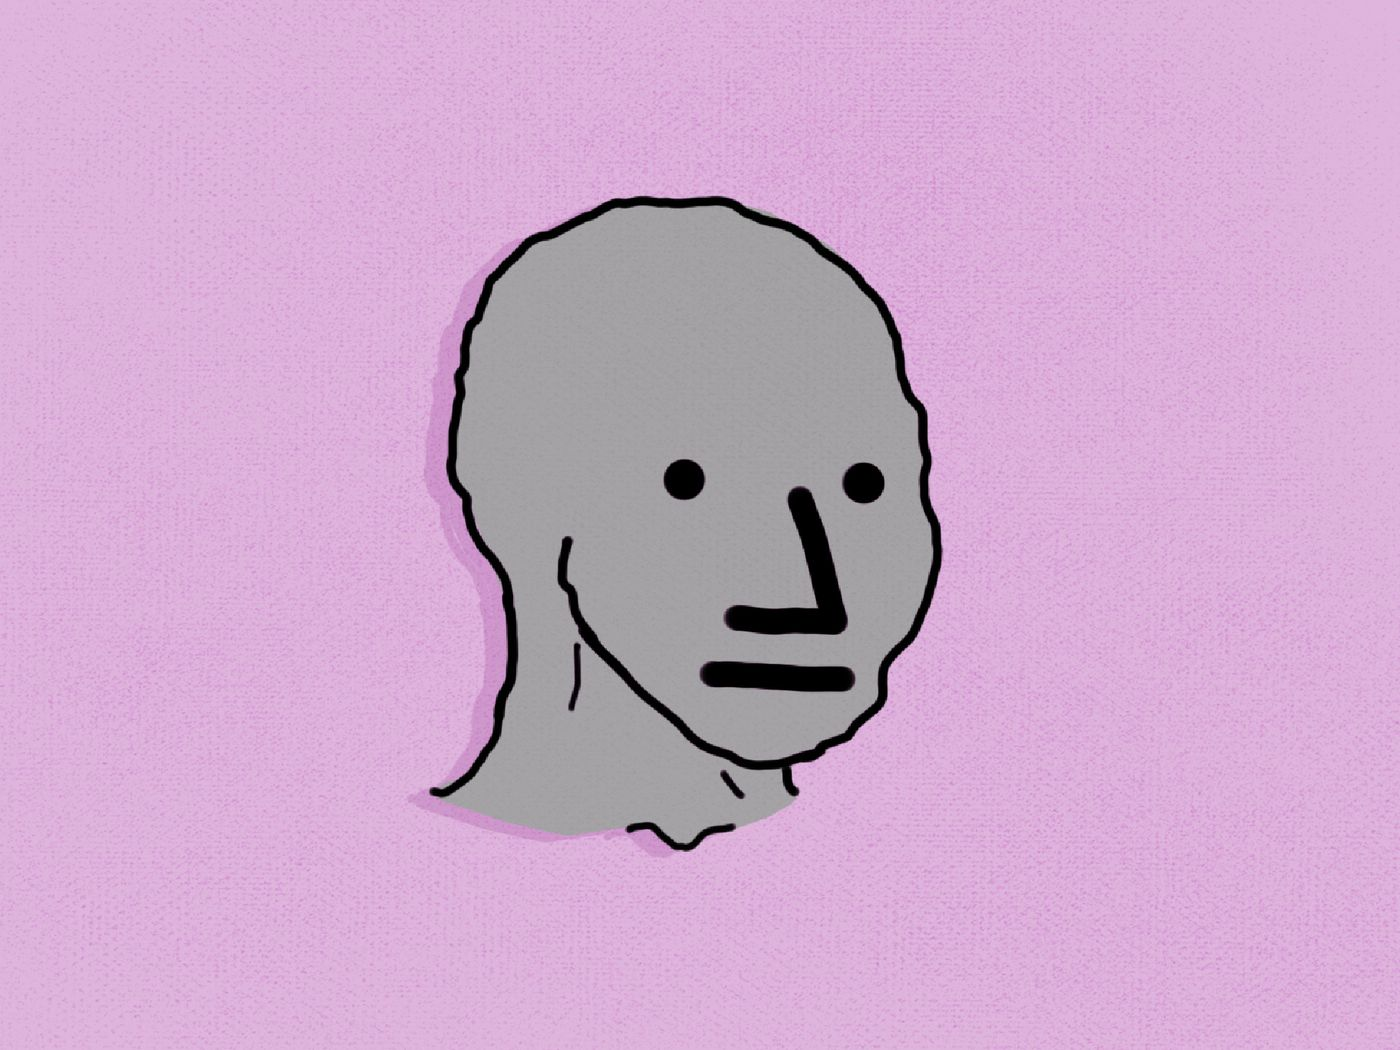 The Npc Meme Went Viral When The Media Gave It Oxygen The Verge